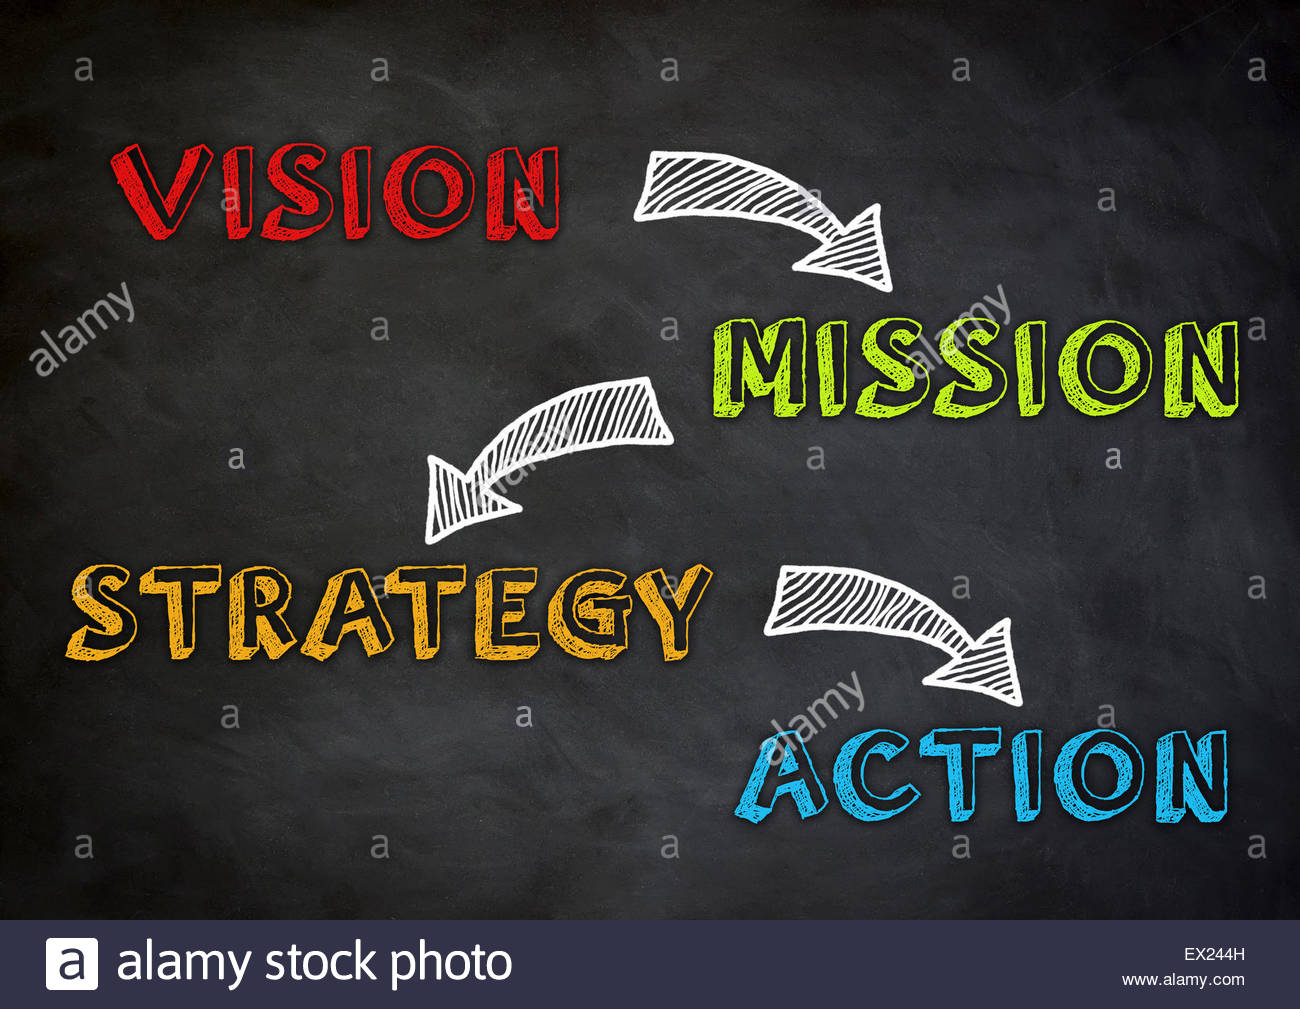 vision - mission - strategy - action - Stock Image